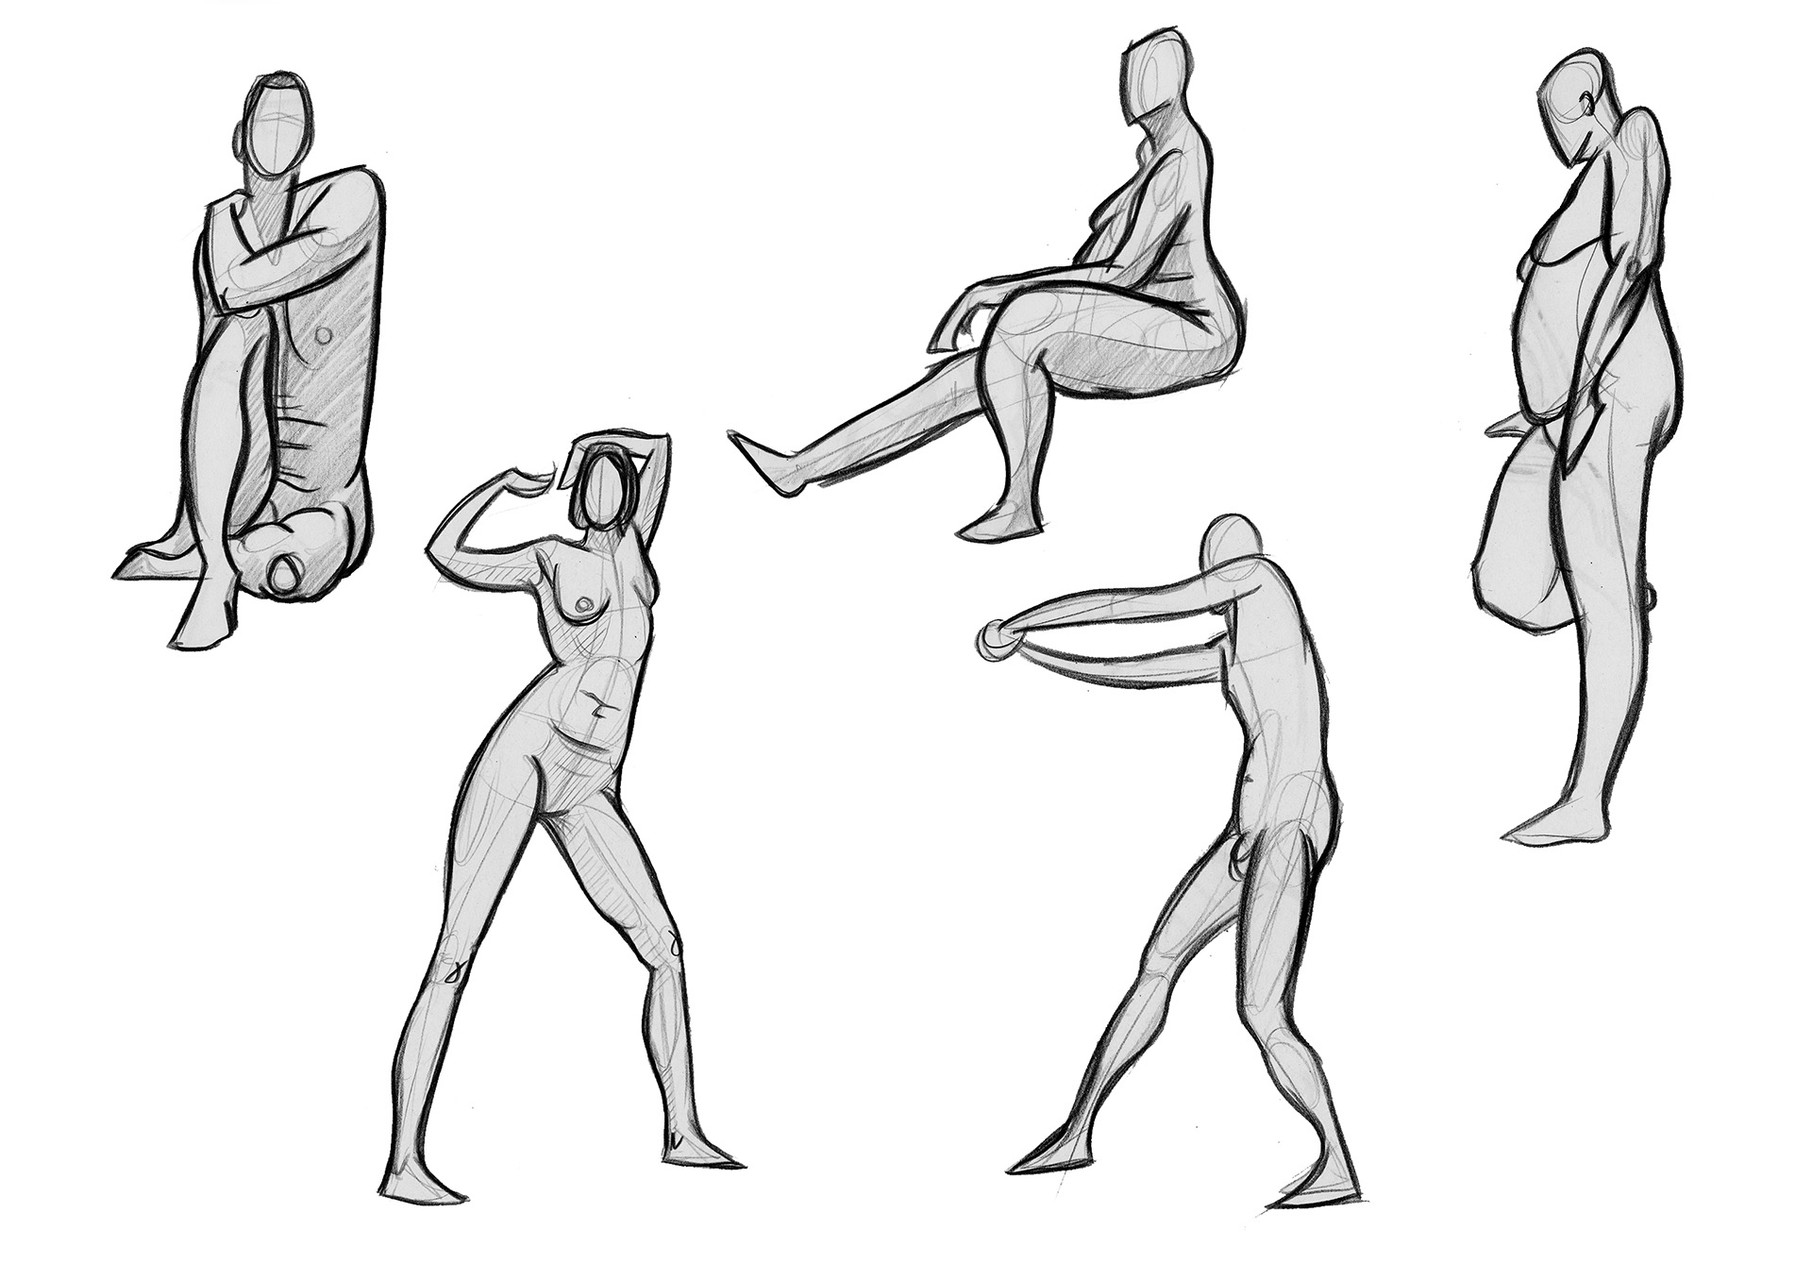 2 minutes poses